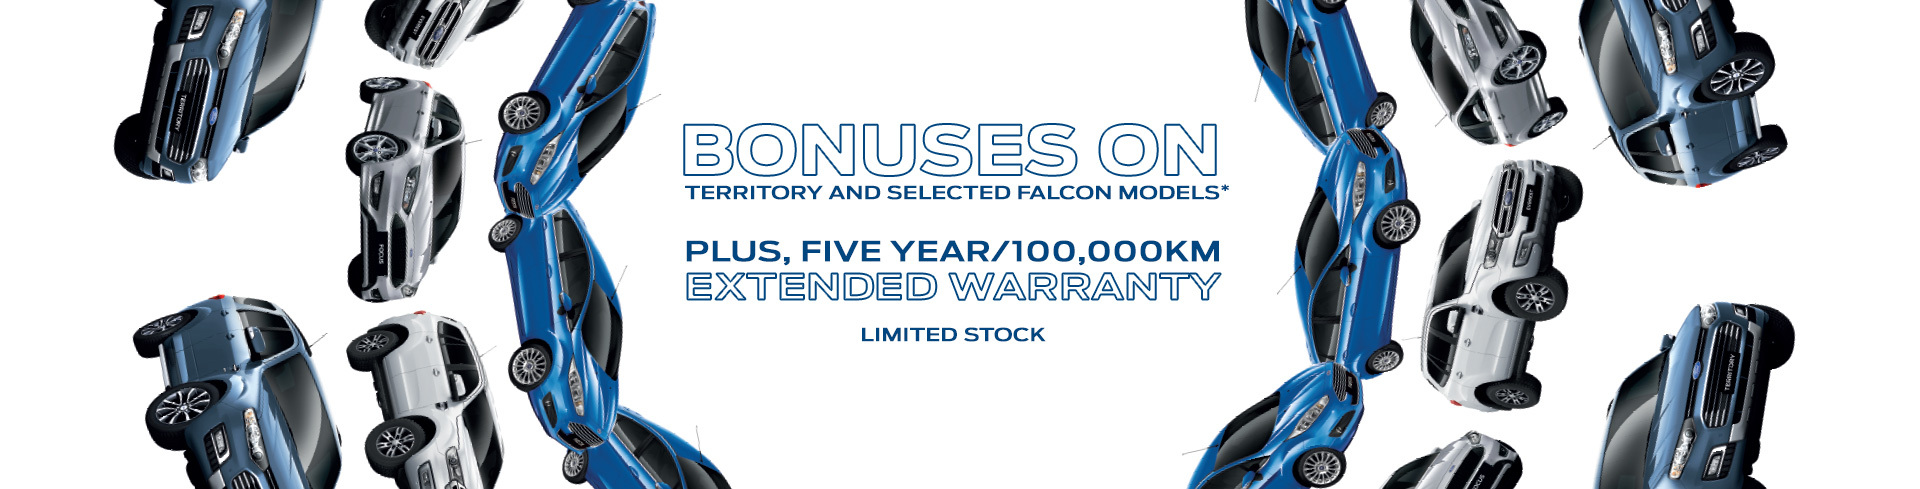 Ford - National Offer - Bonuses on territory & selected falcon models - 5 year e